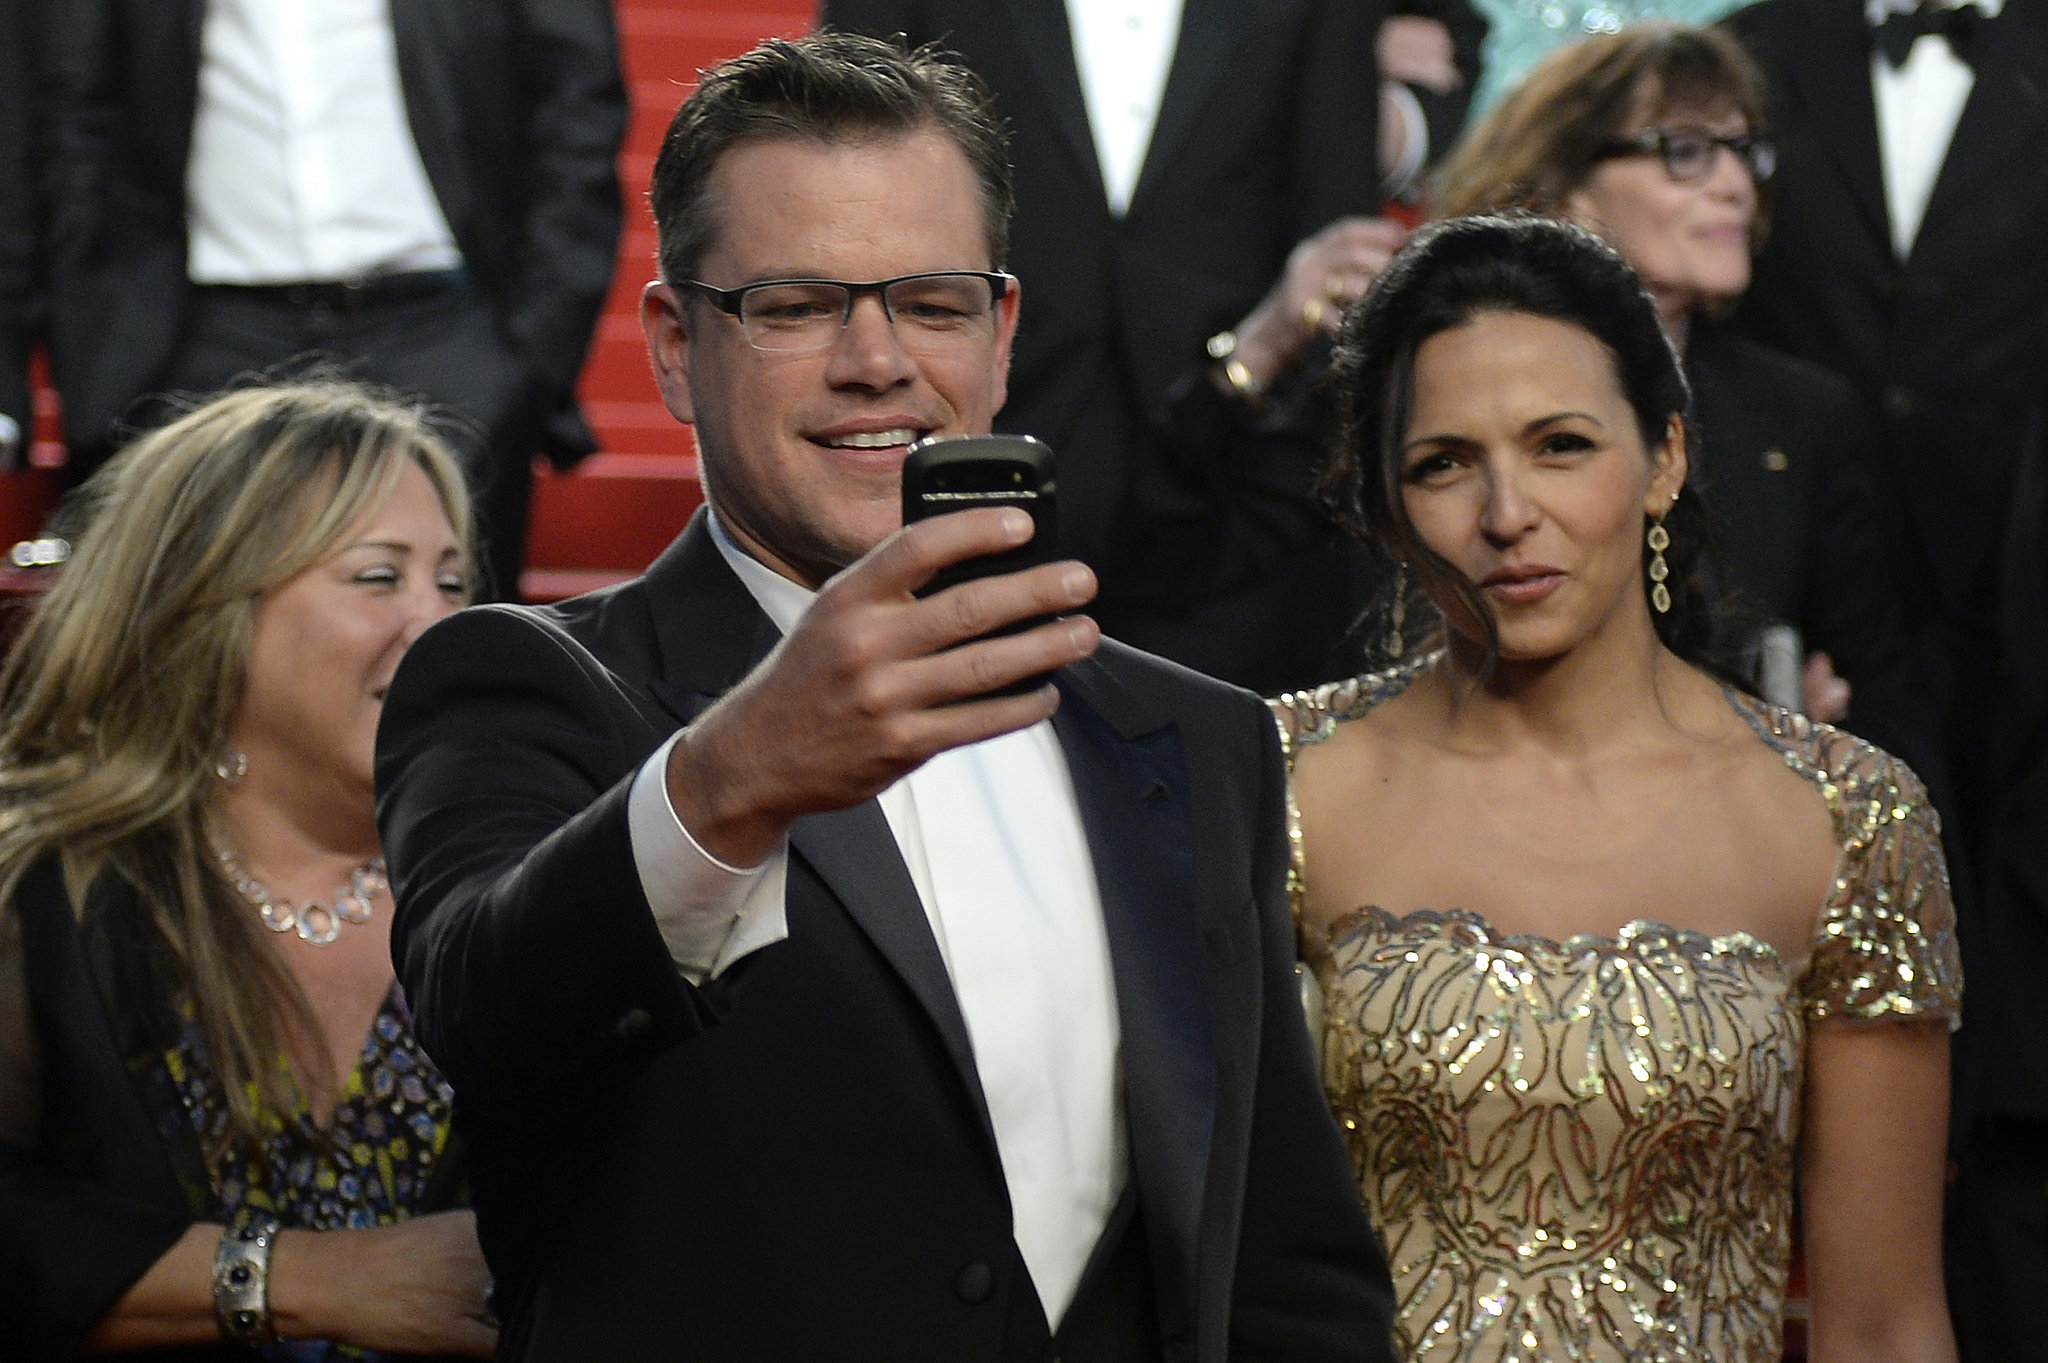 Matt Damon made sure to capture the moment on his phone while attending the screening of Behind the Candelabra in 2013.